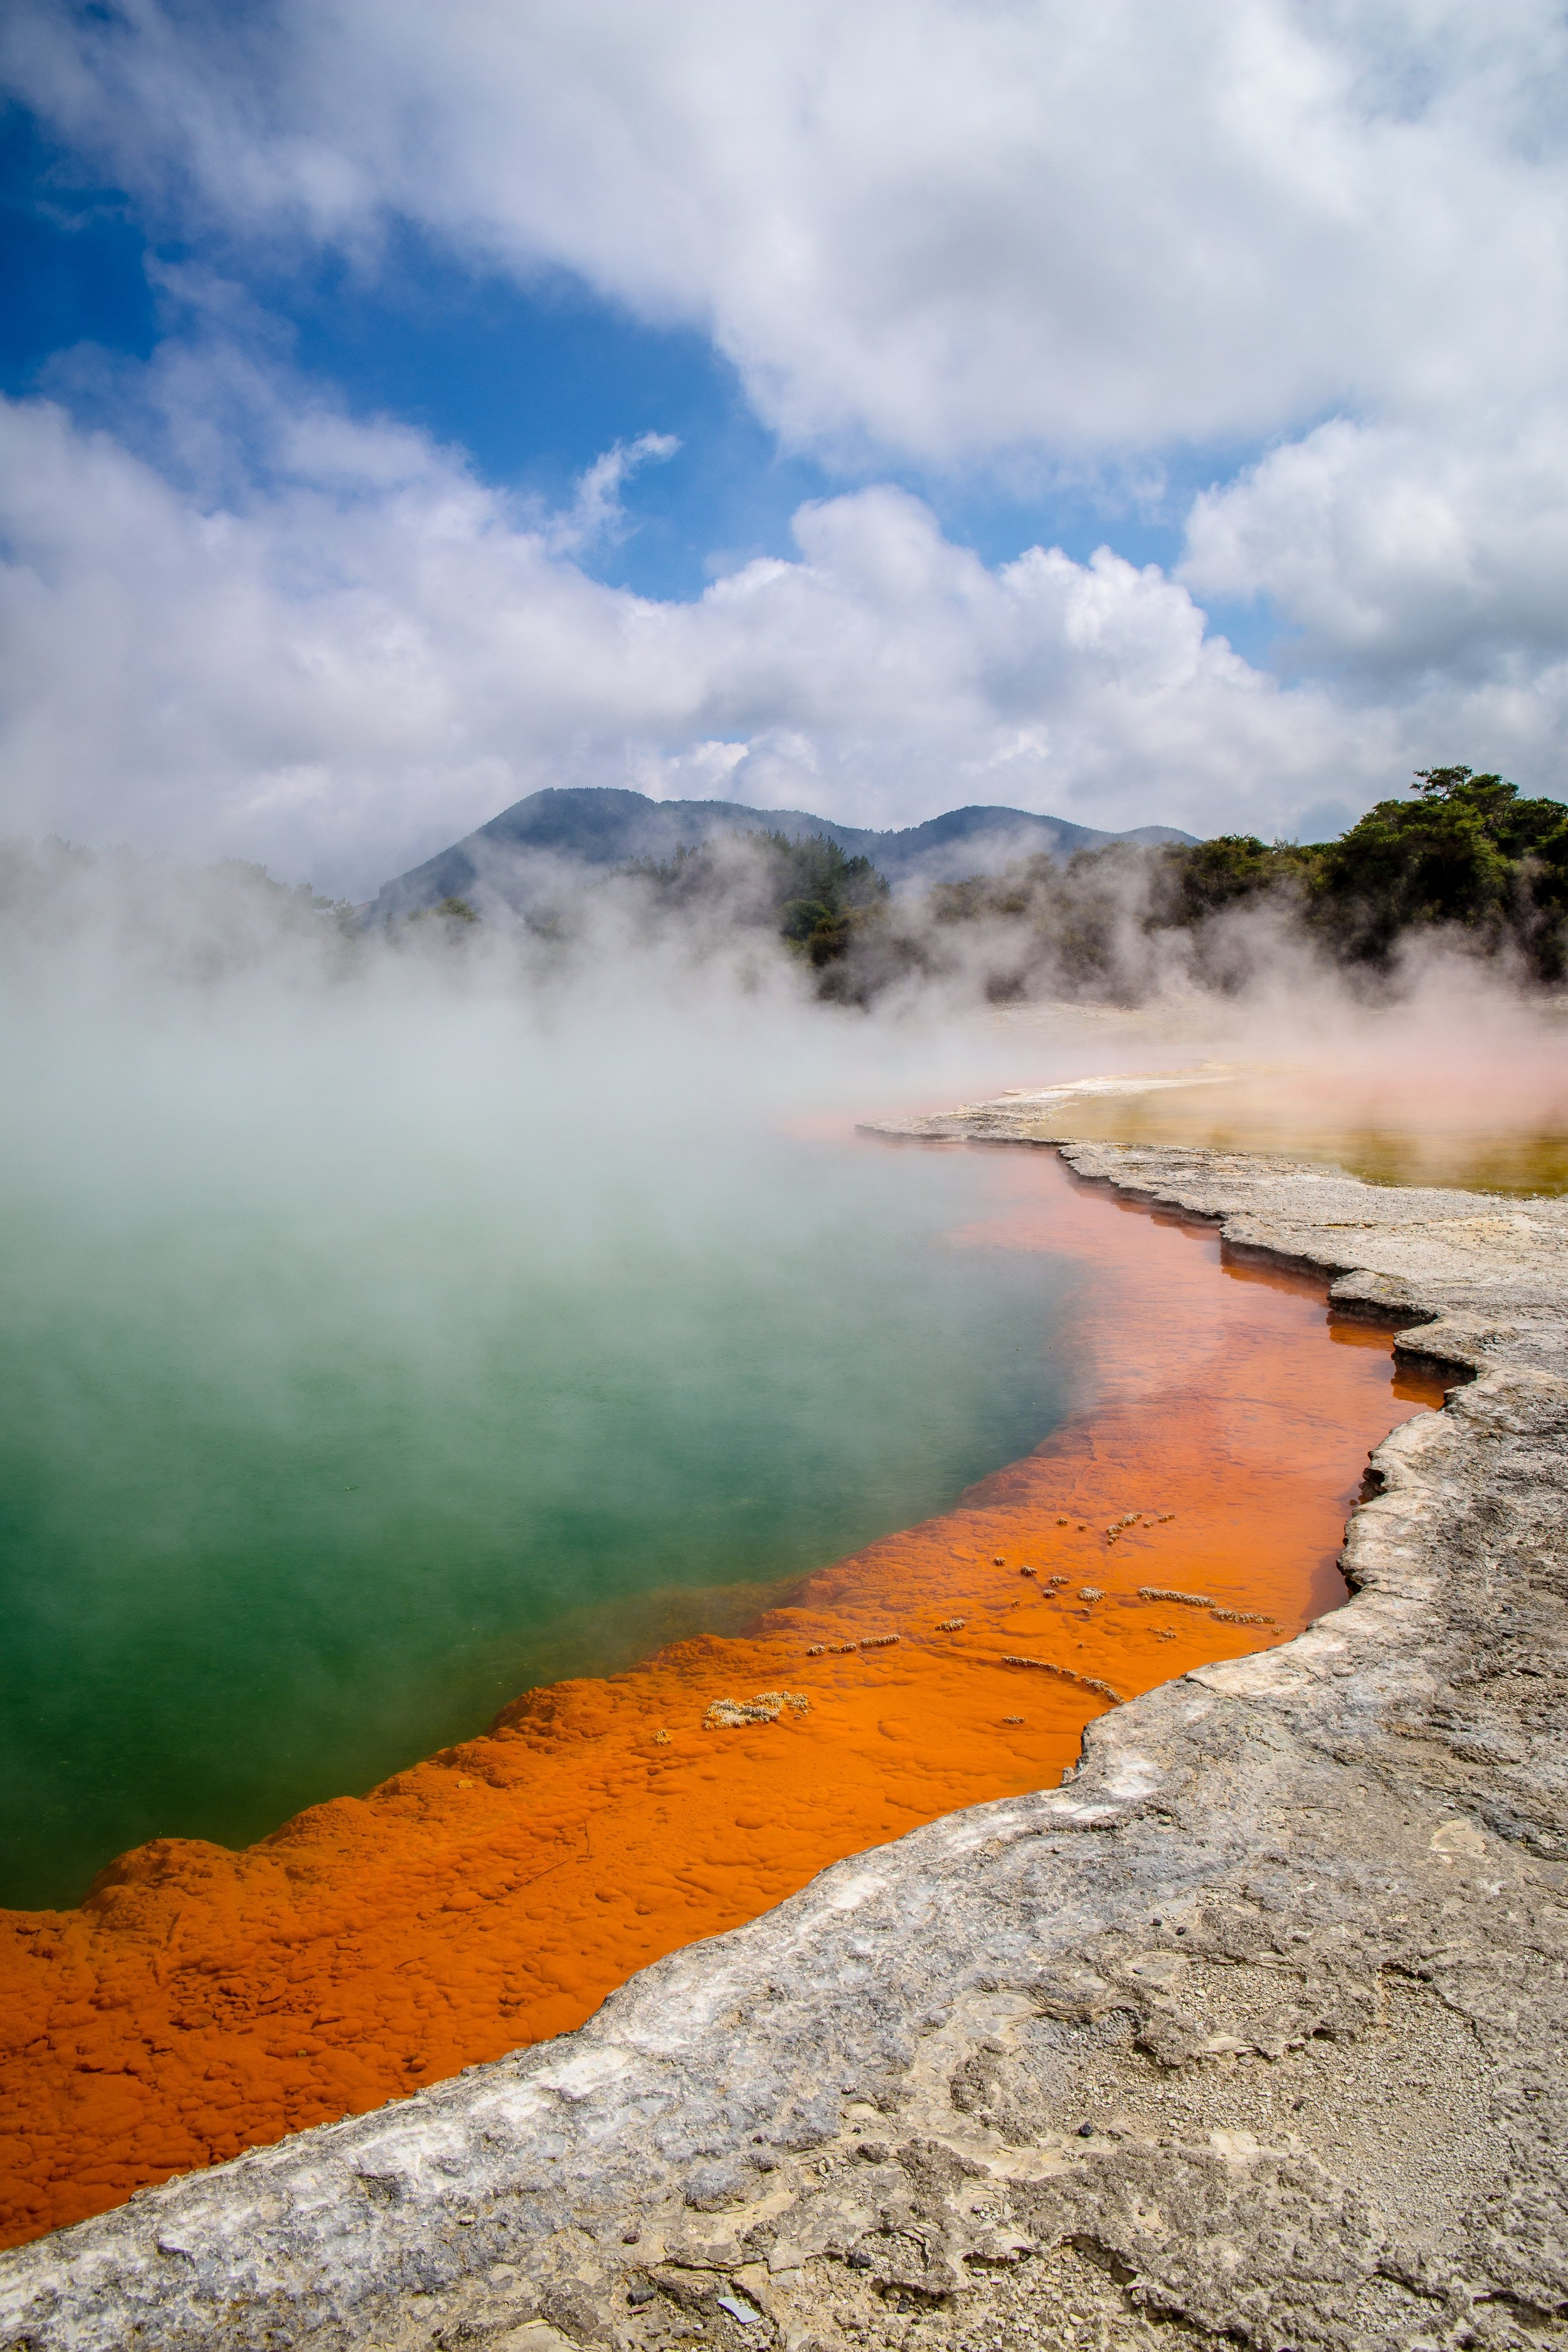 #10 - maori history and geothermal pools